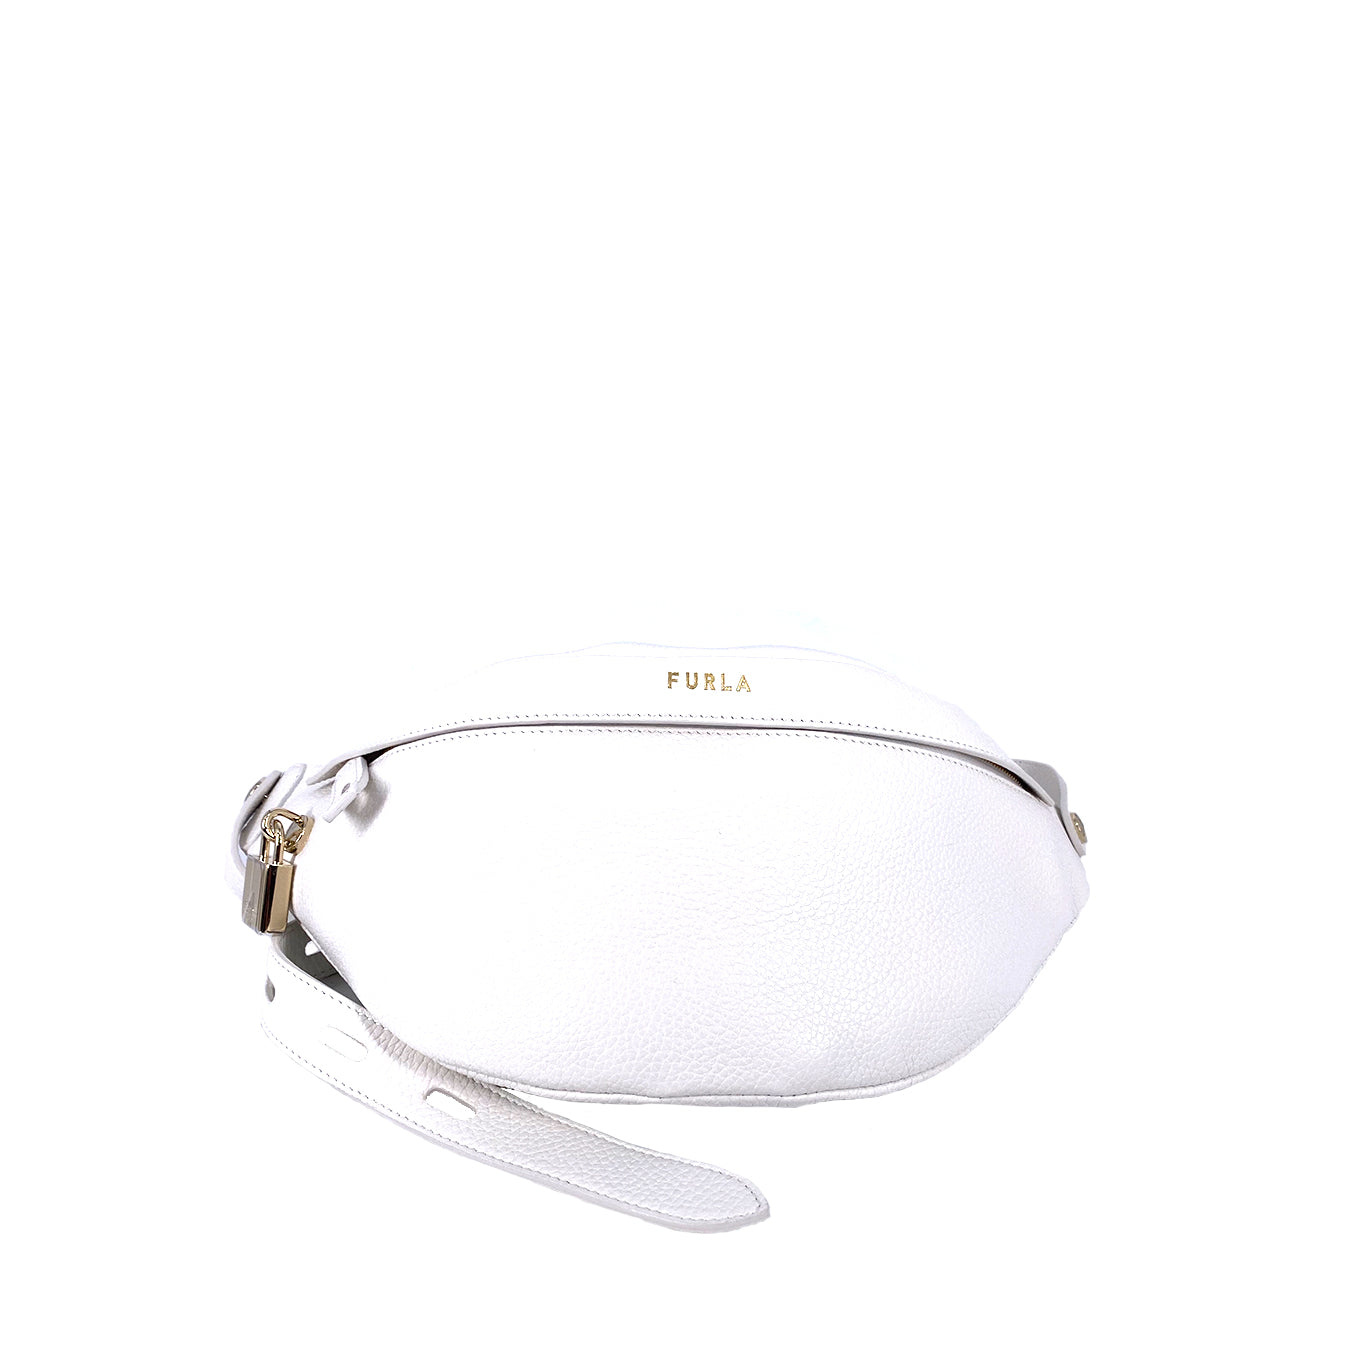 Furla Piper Belt Bag 1064982 B Baho HFS Talco